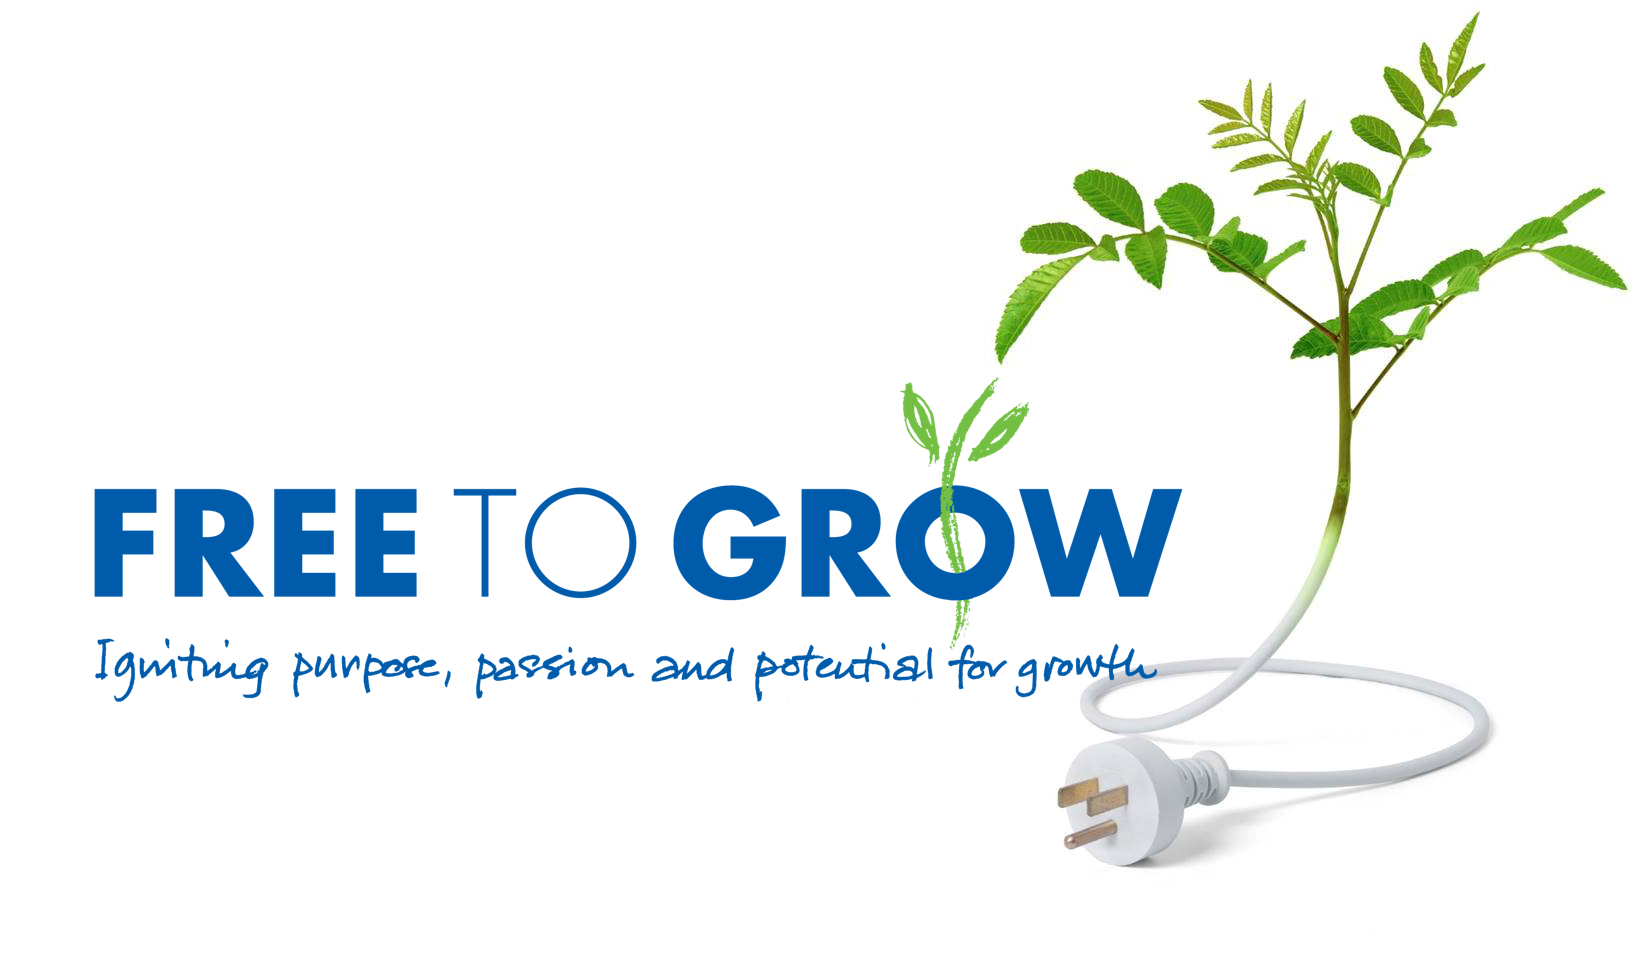 Free To Grow - Igniting Purpose Passion and Potential for Growth